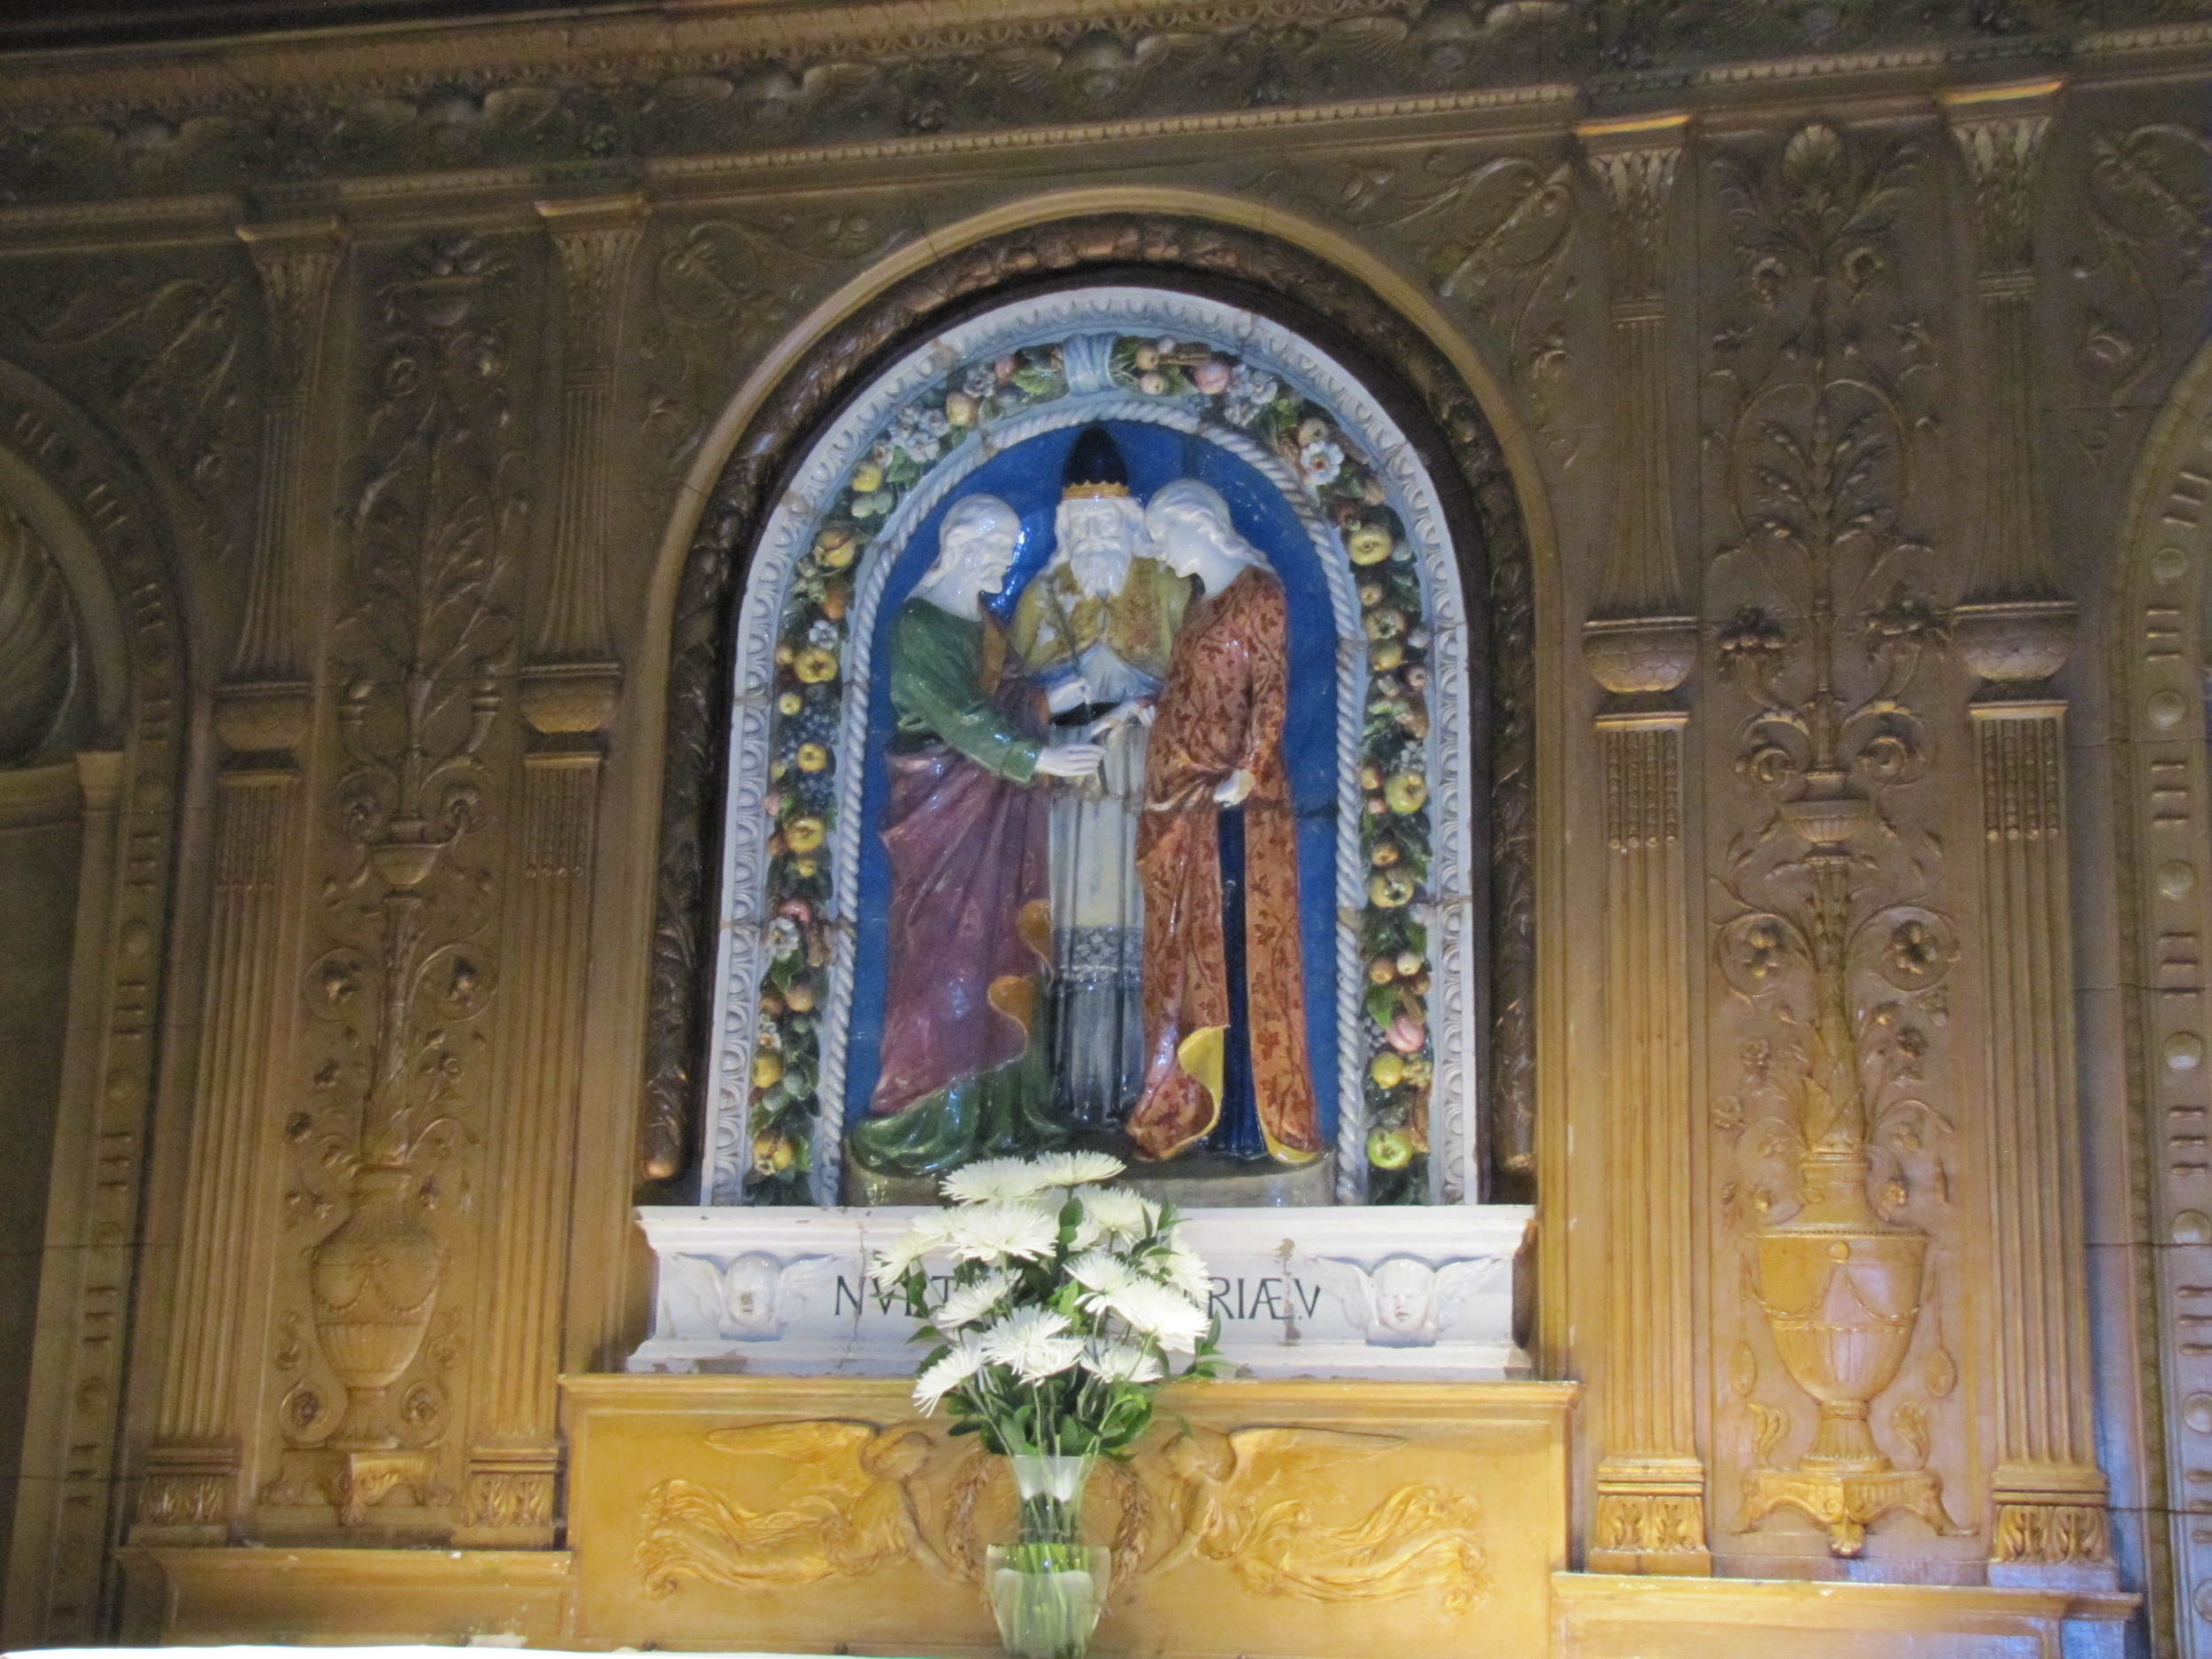 The Marriage of The Blessed Virgin Mary to Joseph - an Italian Terra Cotta in Saint Joseph's Chapel, where smaller weddings are often held at Saint Mary's.